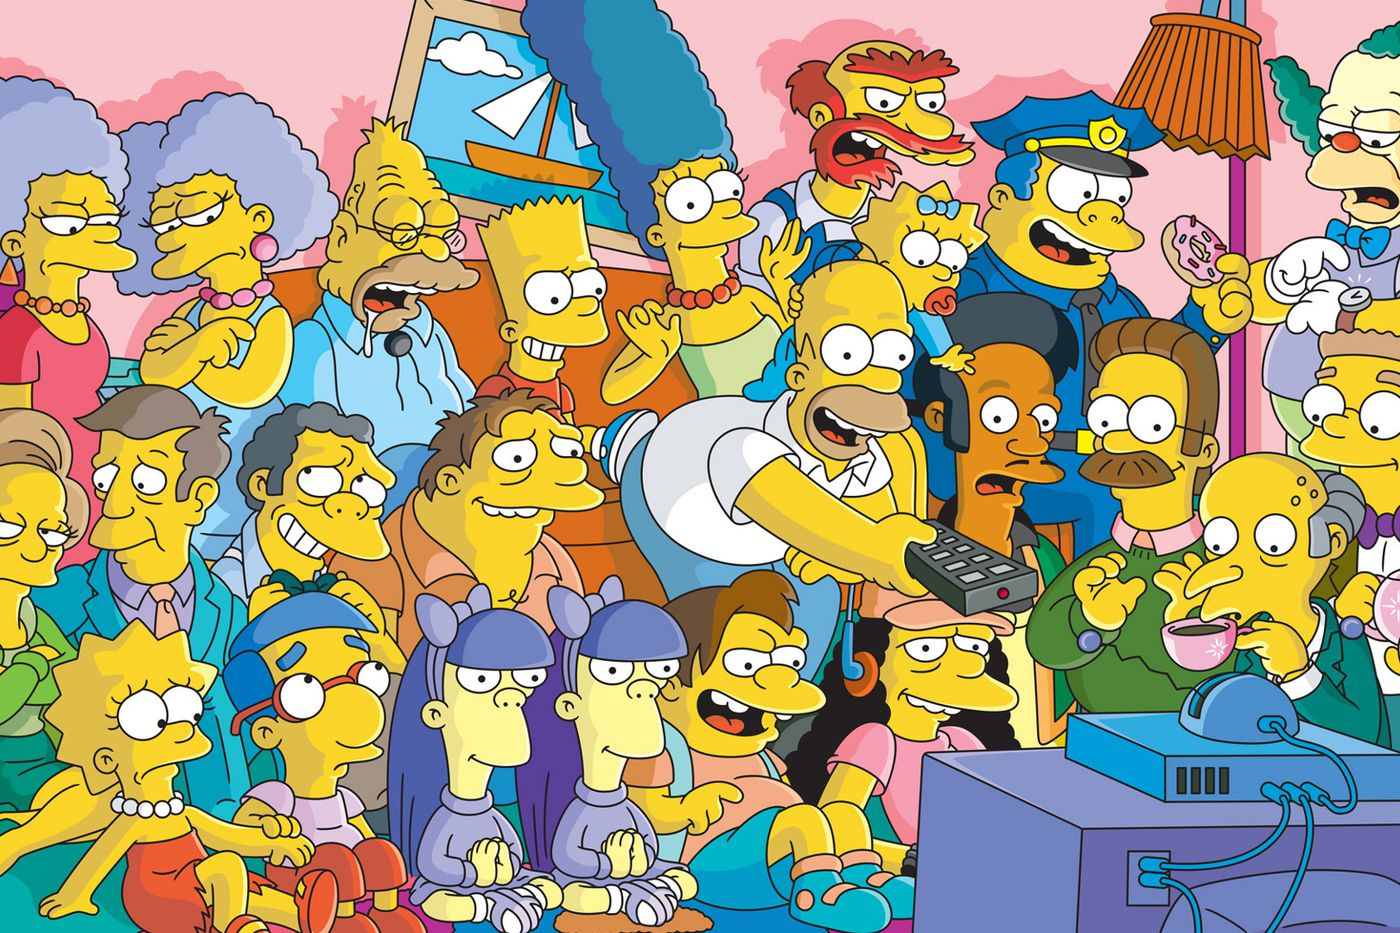 How an episode of The Simpsons is made | The Verge